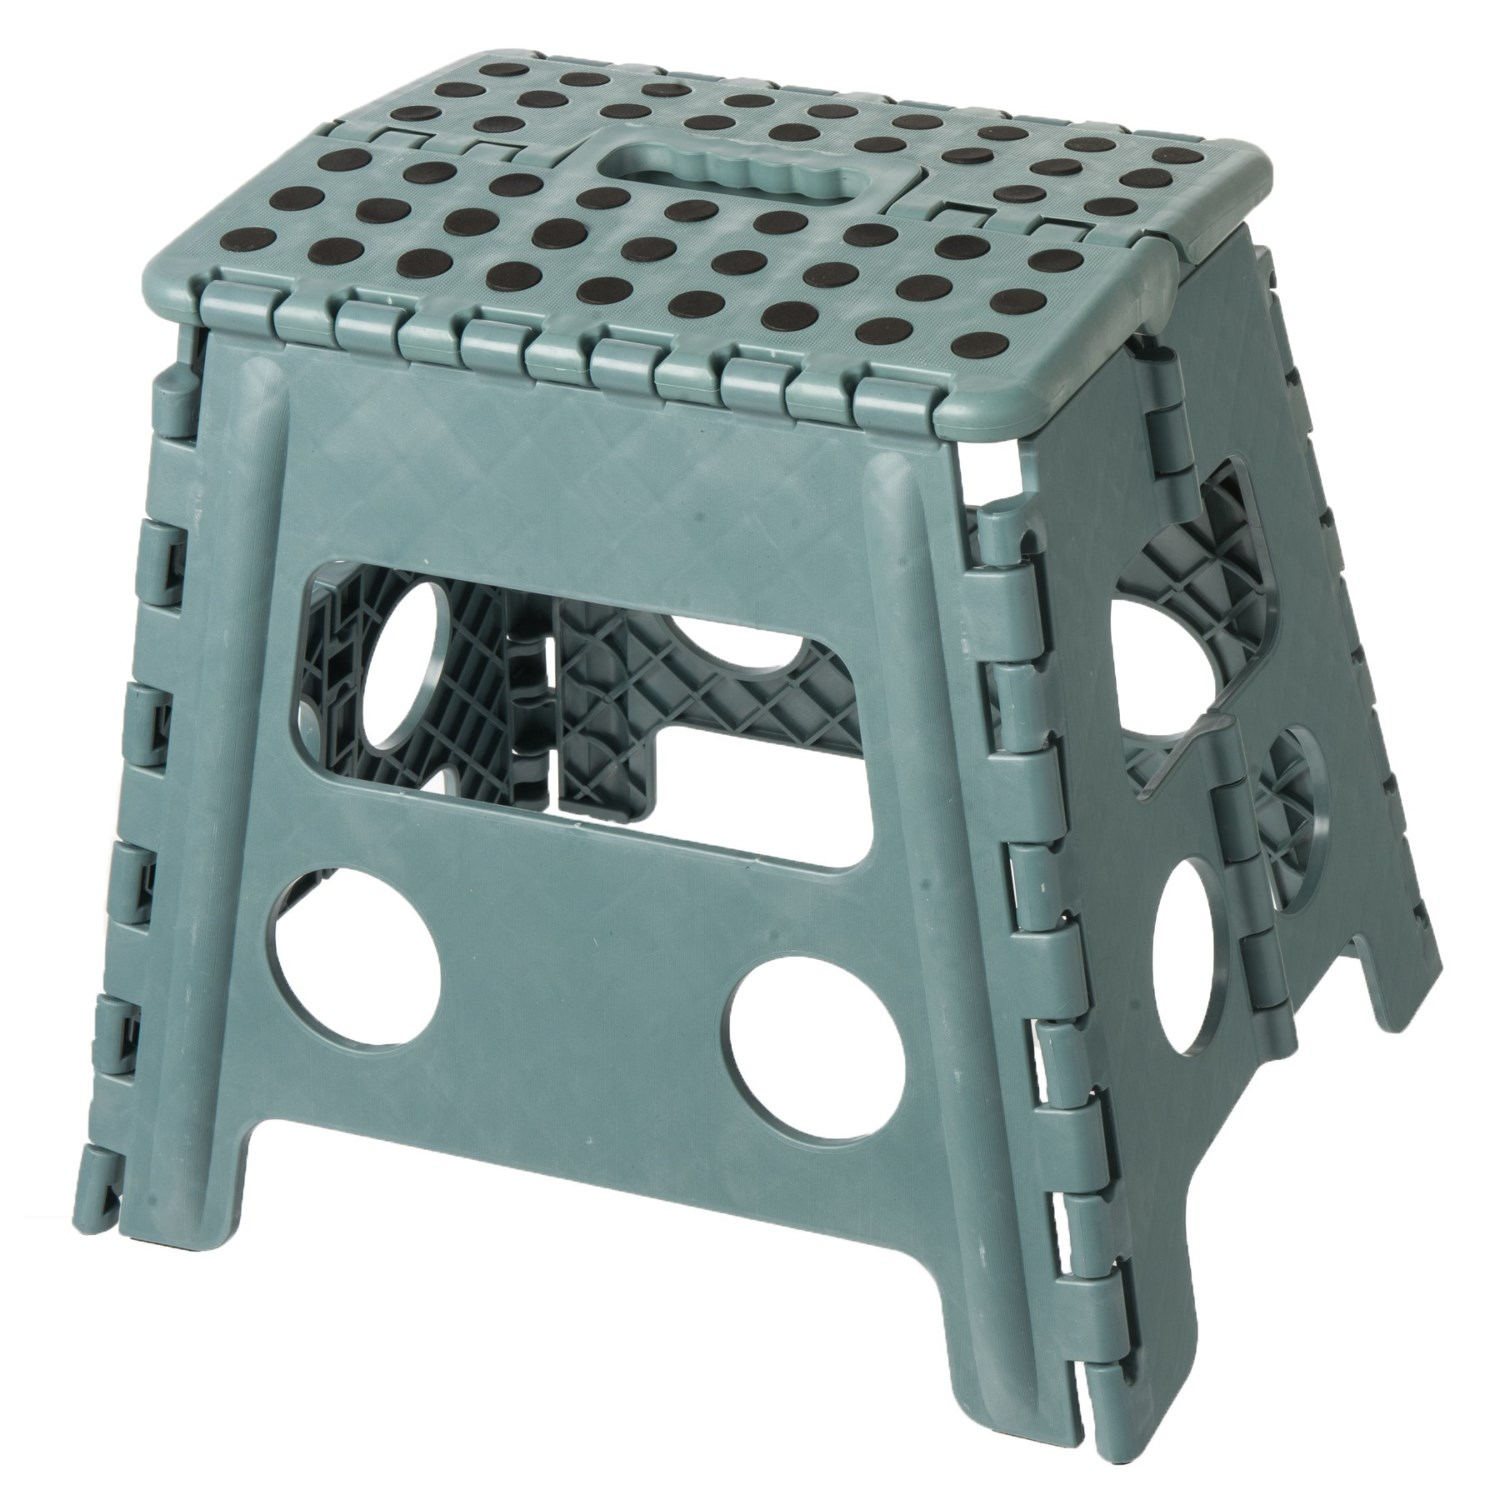 Farberware Classic Series Non Skid Foldable Step Stool